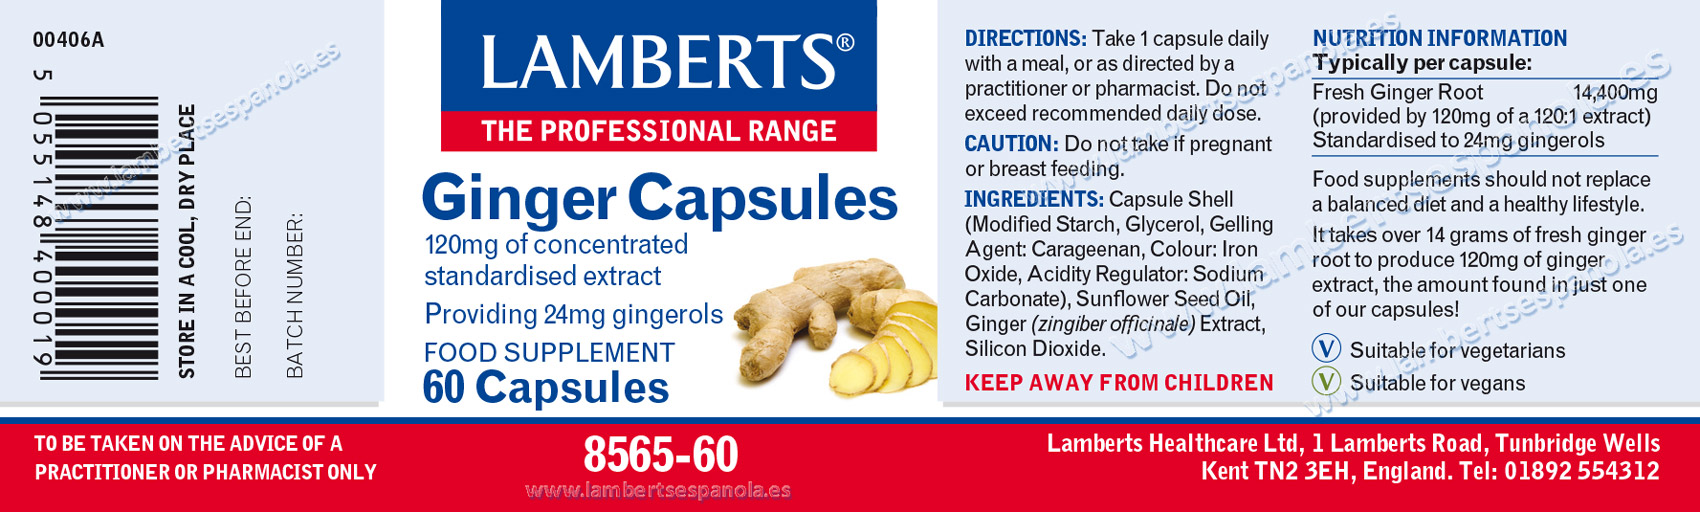 Lamberts Ginger label with indications